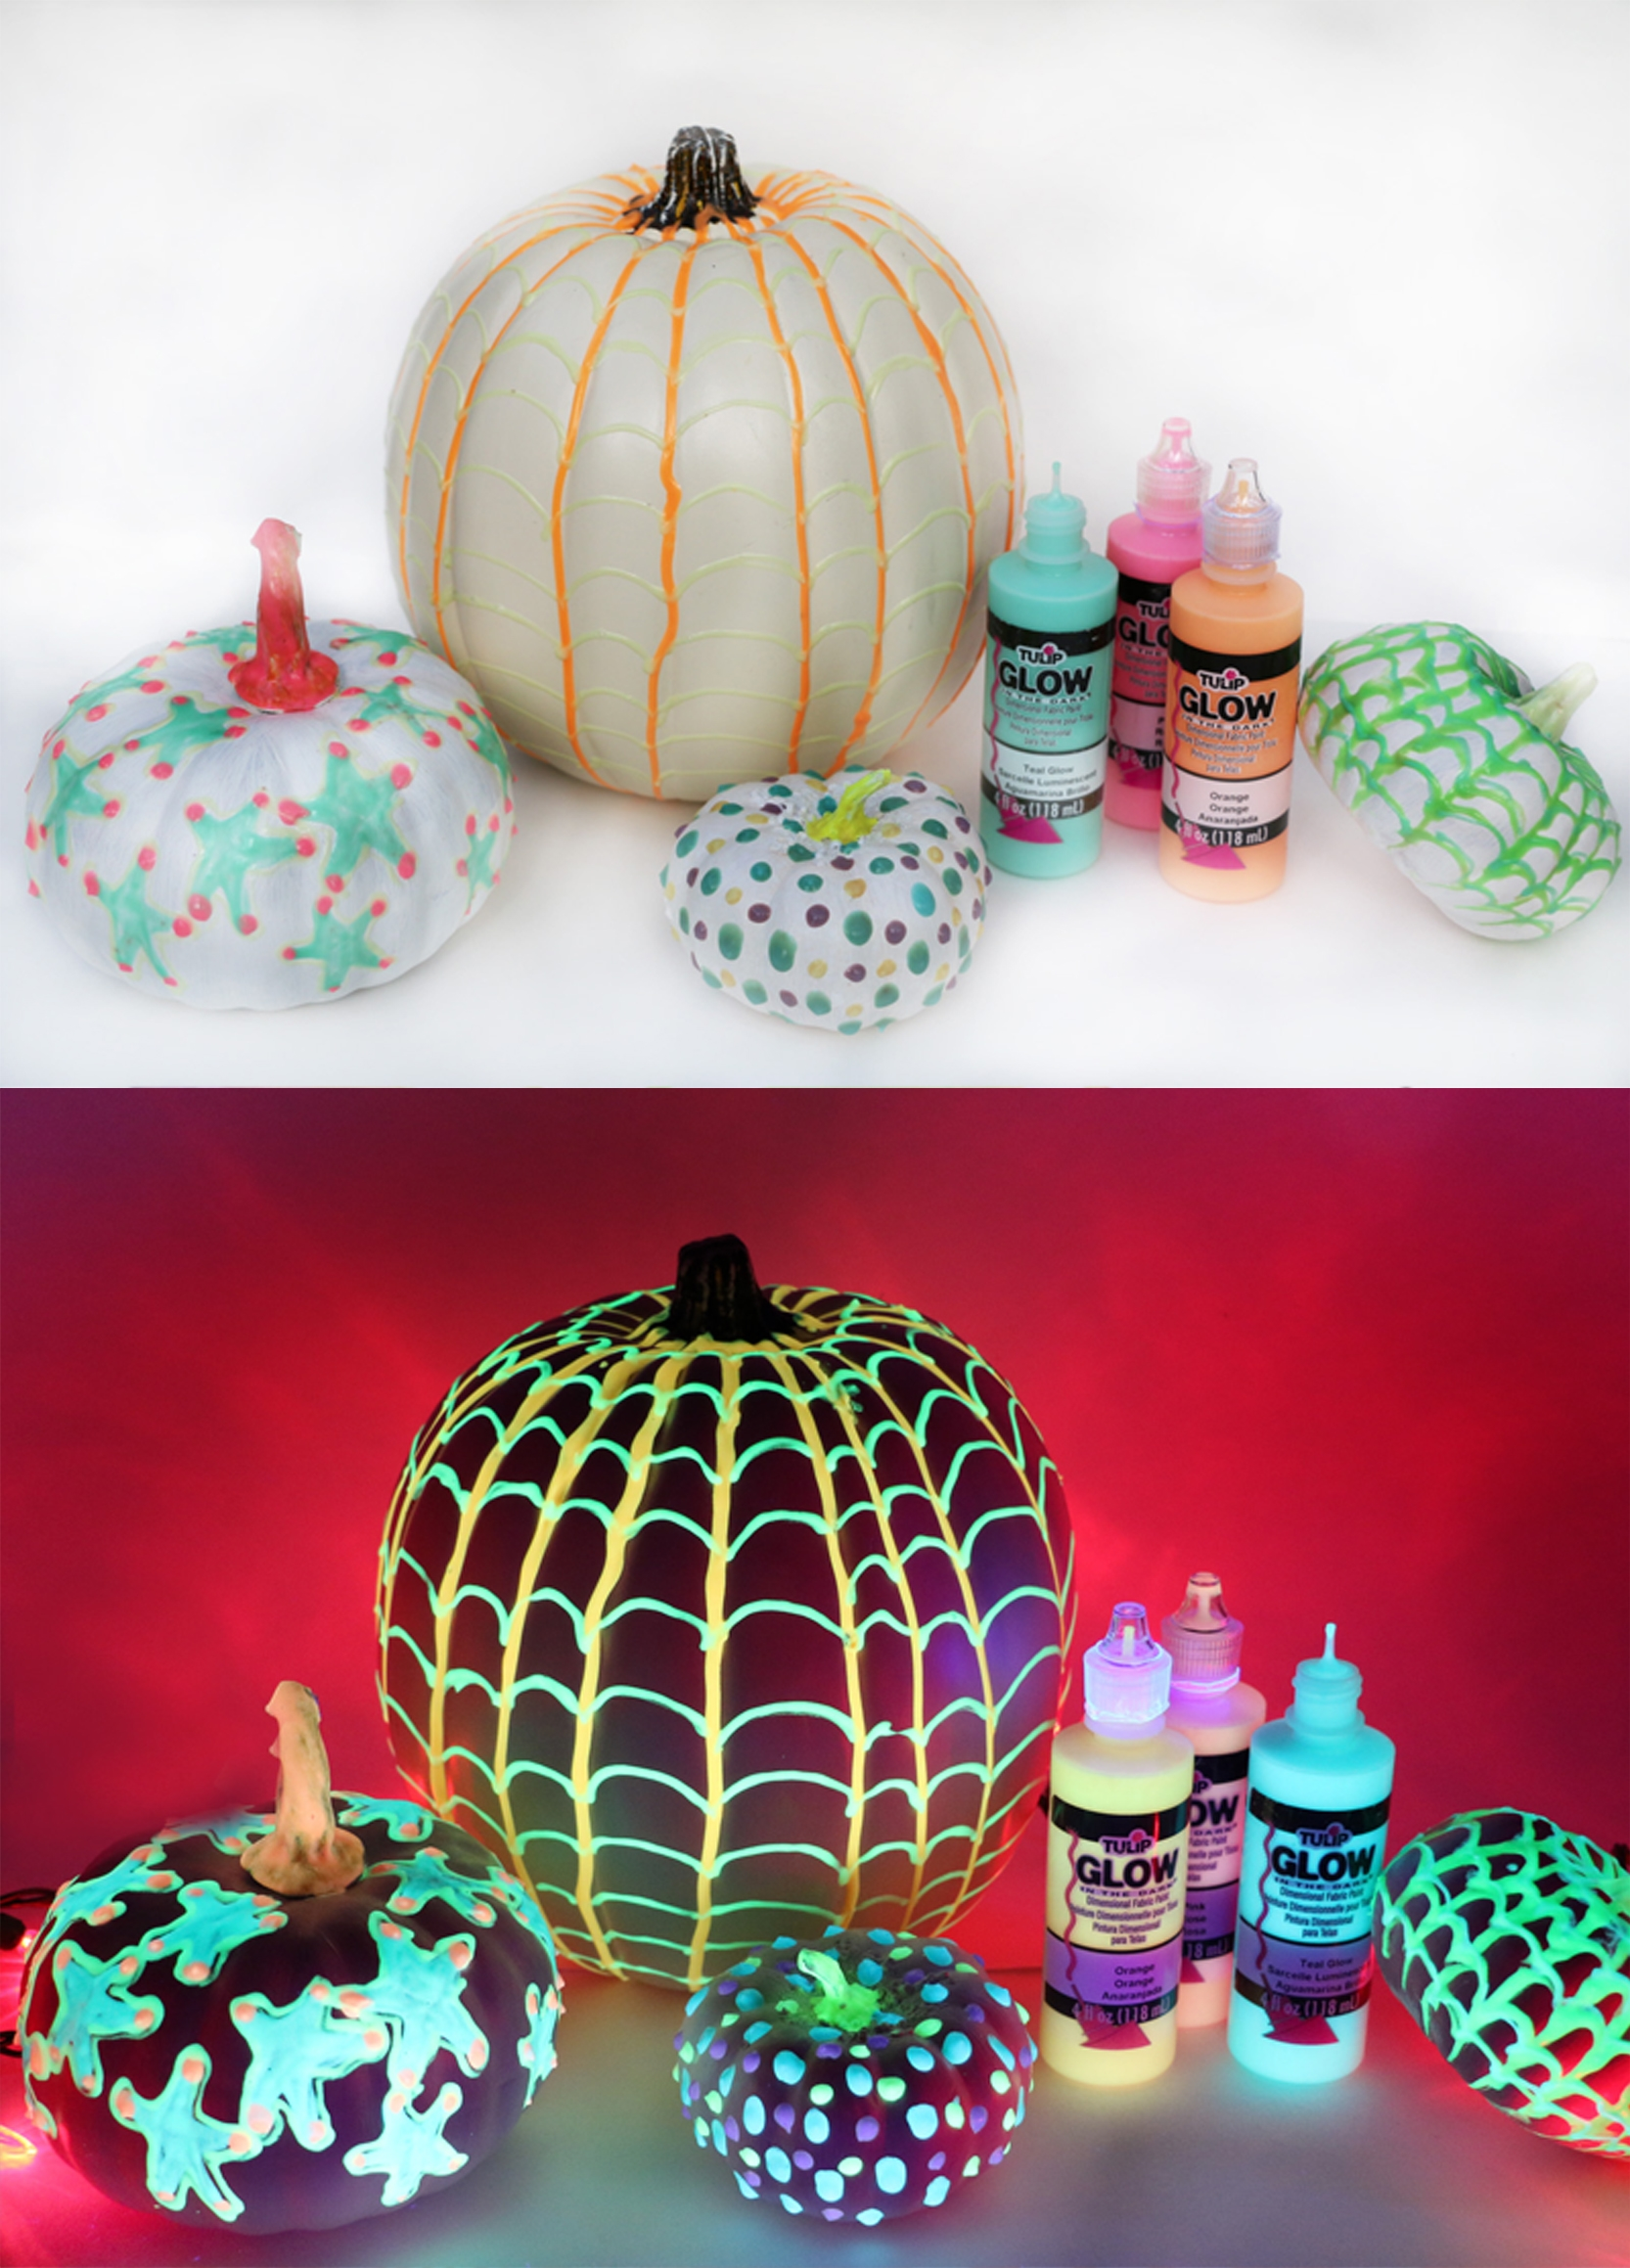 Glow in the Dark Pumpkins